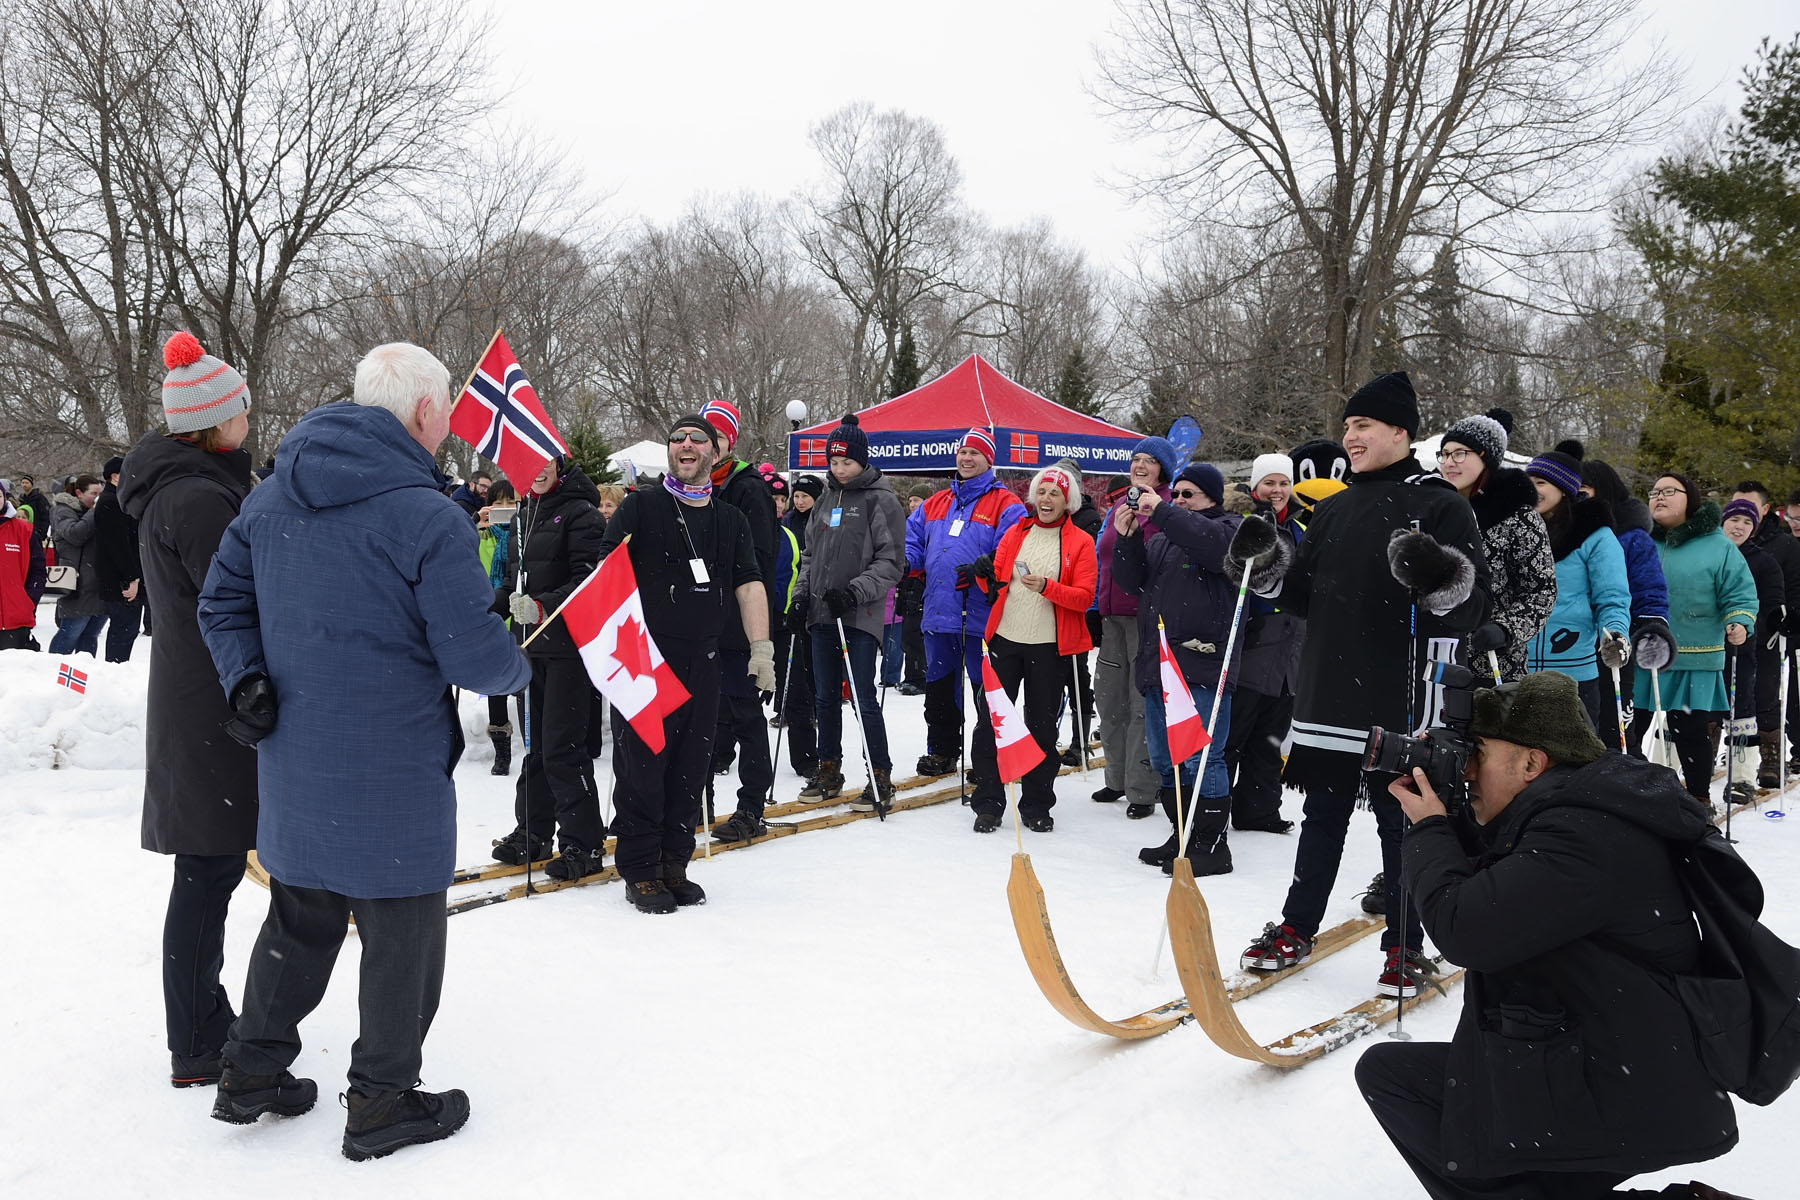 Their Excellencies gave the signal to start the giant ski race. The activity was organized by the Royal Norwegian Embassy who is celebrating 75 years of Canada-Norway diplomatic relations in 2017.